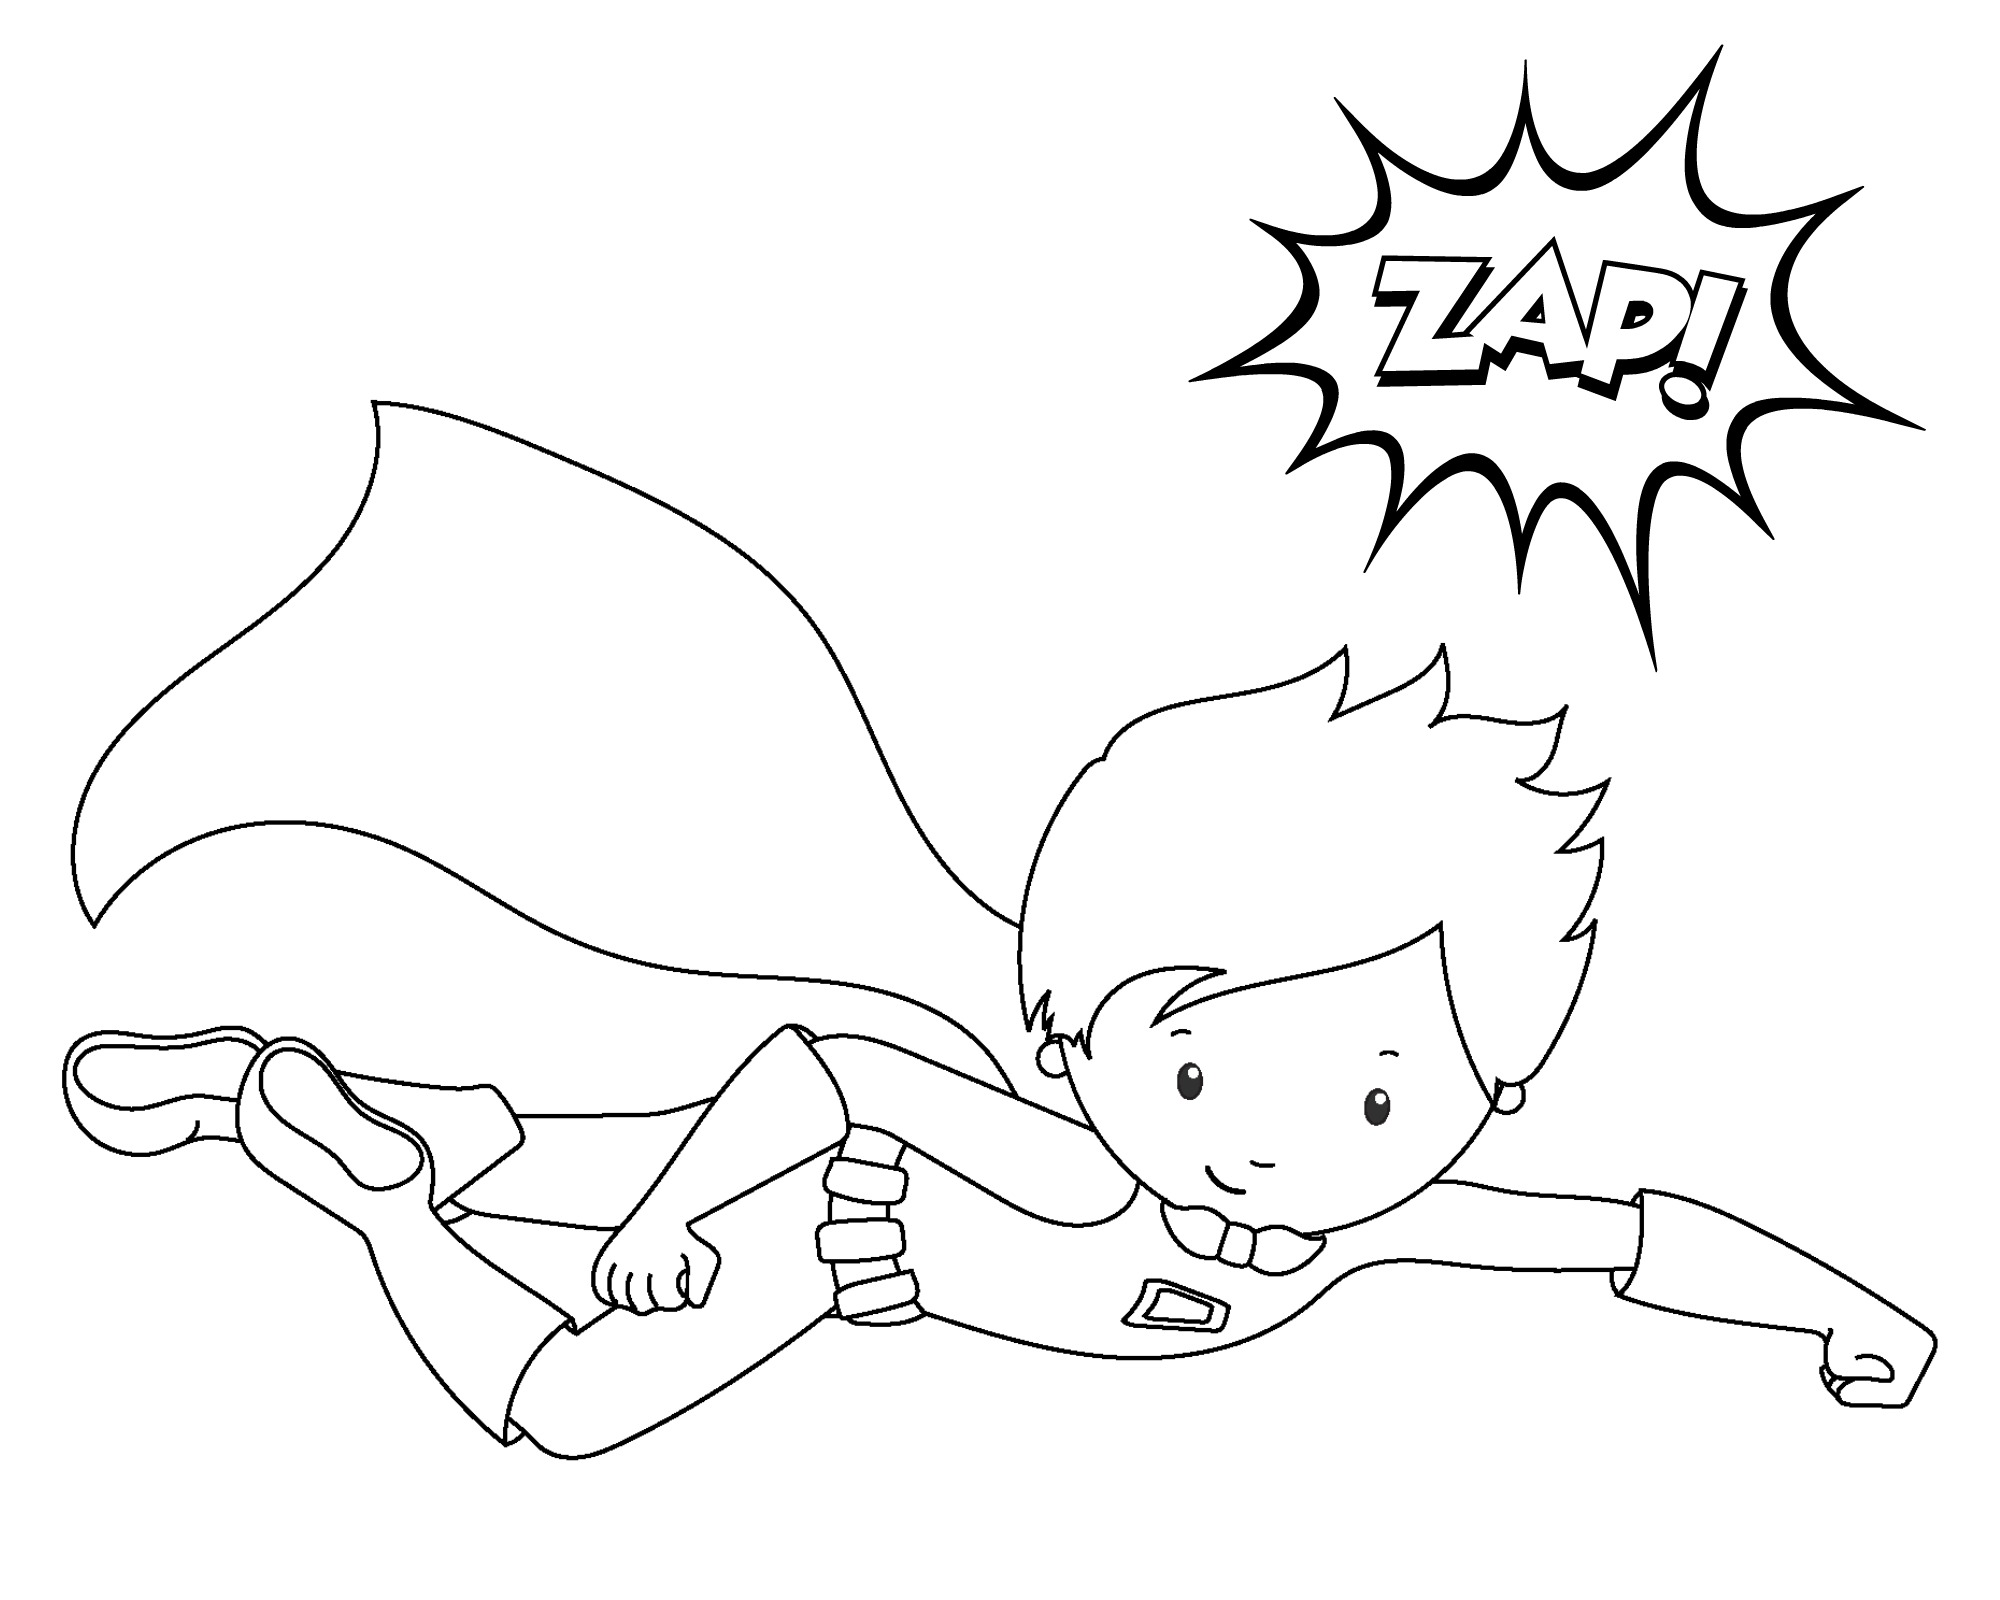 Free Superhero Coloring Pages Superhero Coloring Pages Free Kid